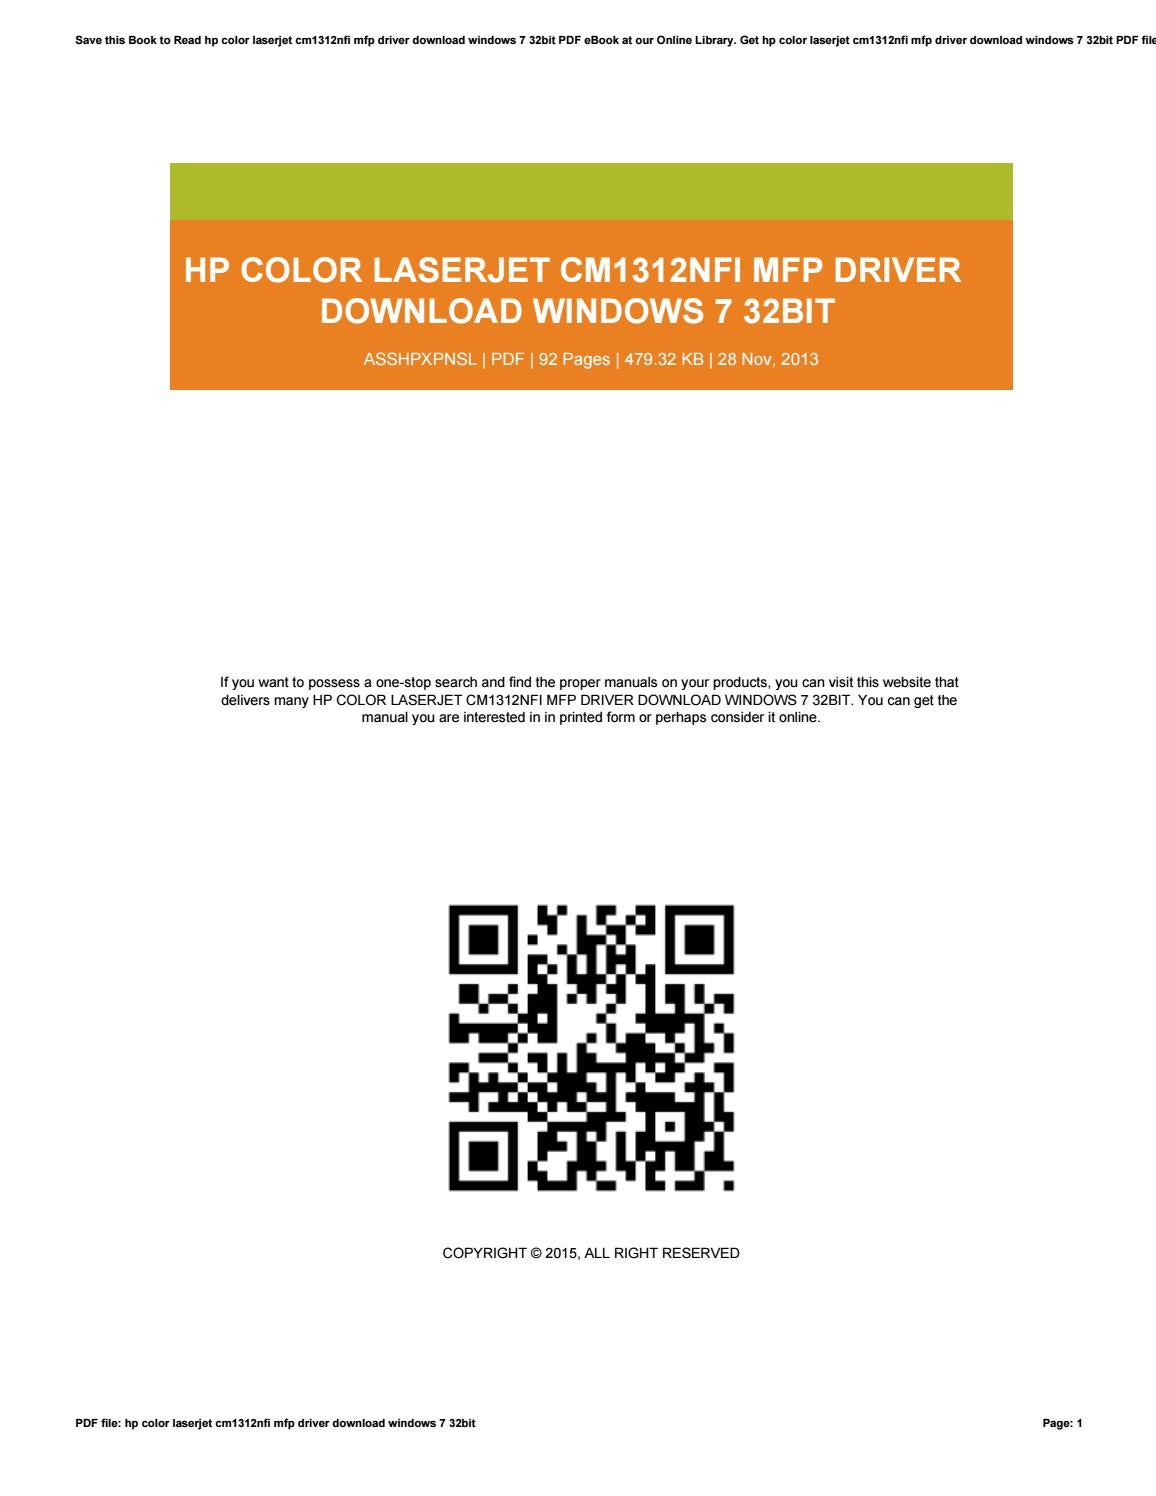 Hp color laserjet cm1312nfi mfp driver download windows 7 32bit by glubex49  - issuu